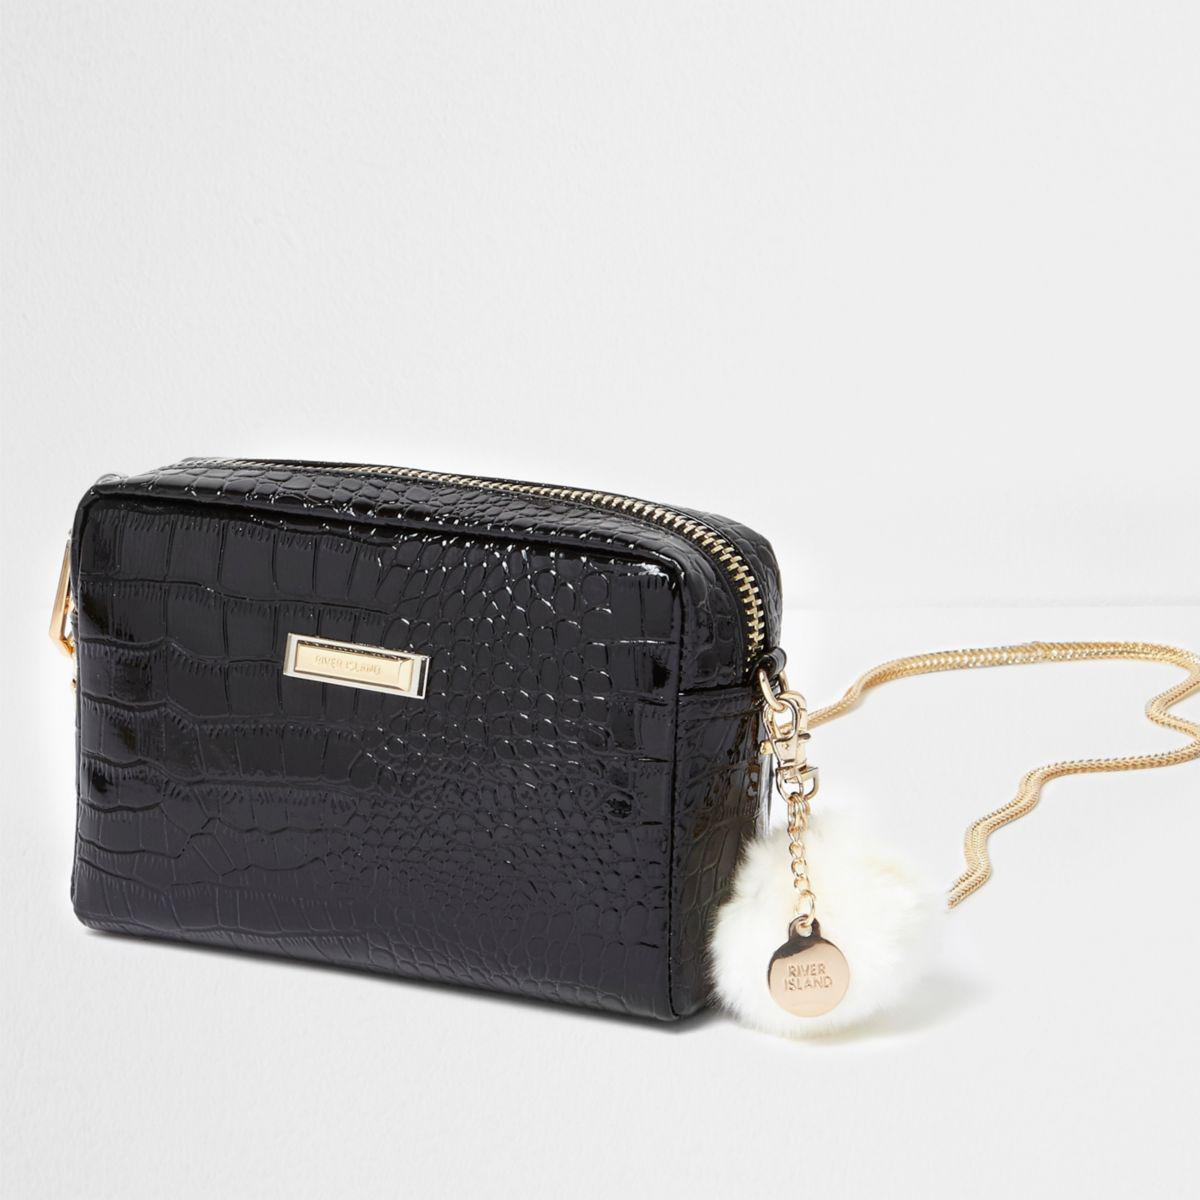 River Island Black Patent Croc Cross Body Chain Bag